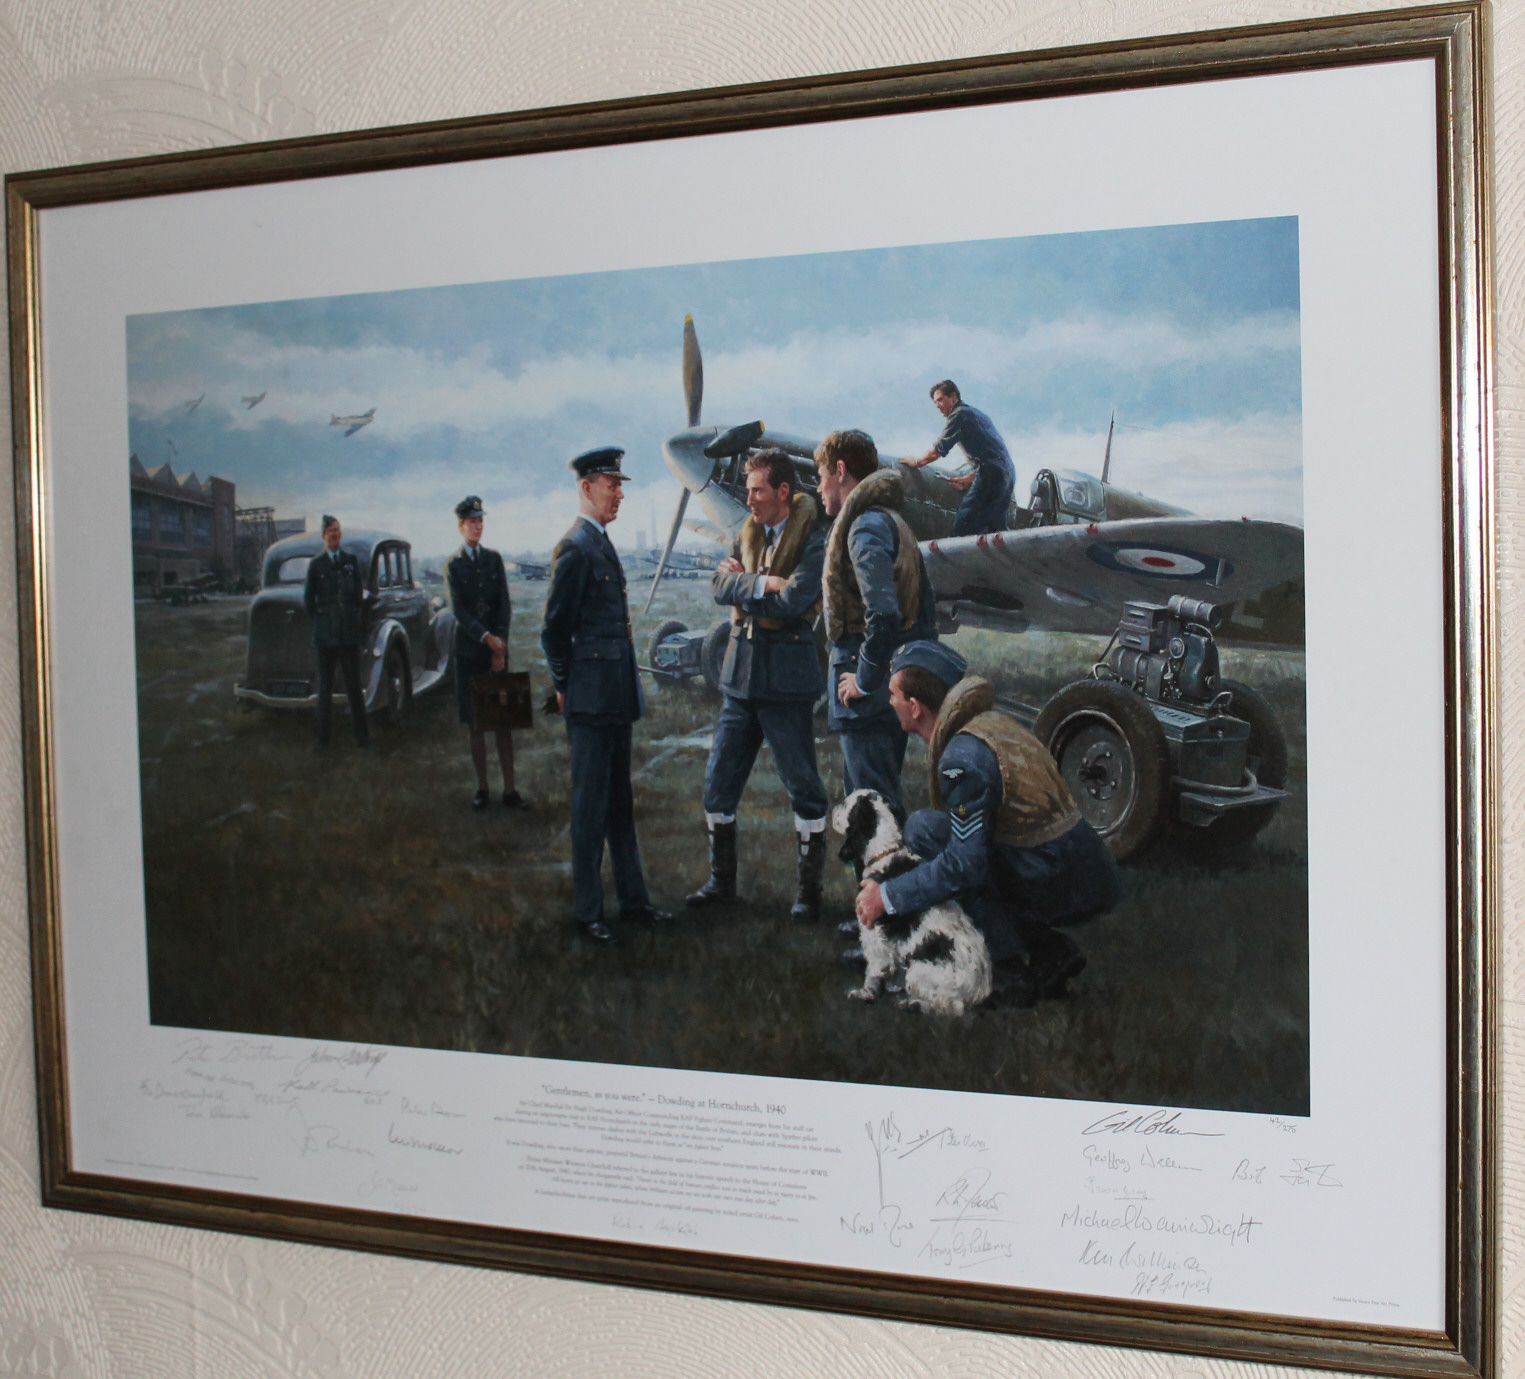 Battle of Britain limited edition print, signed by 22 pilots and aircrew